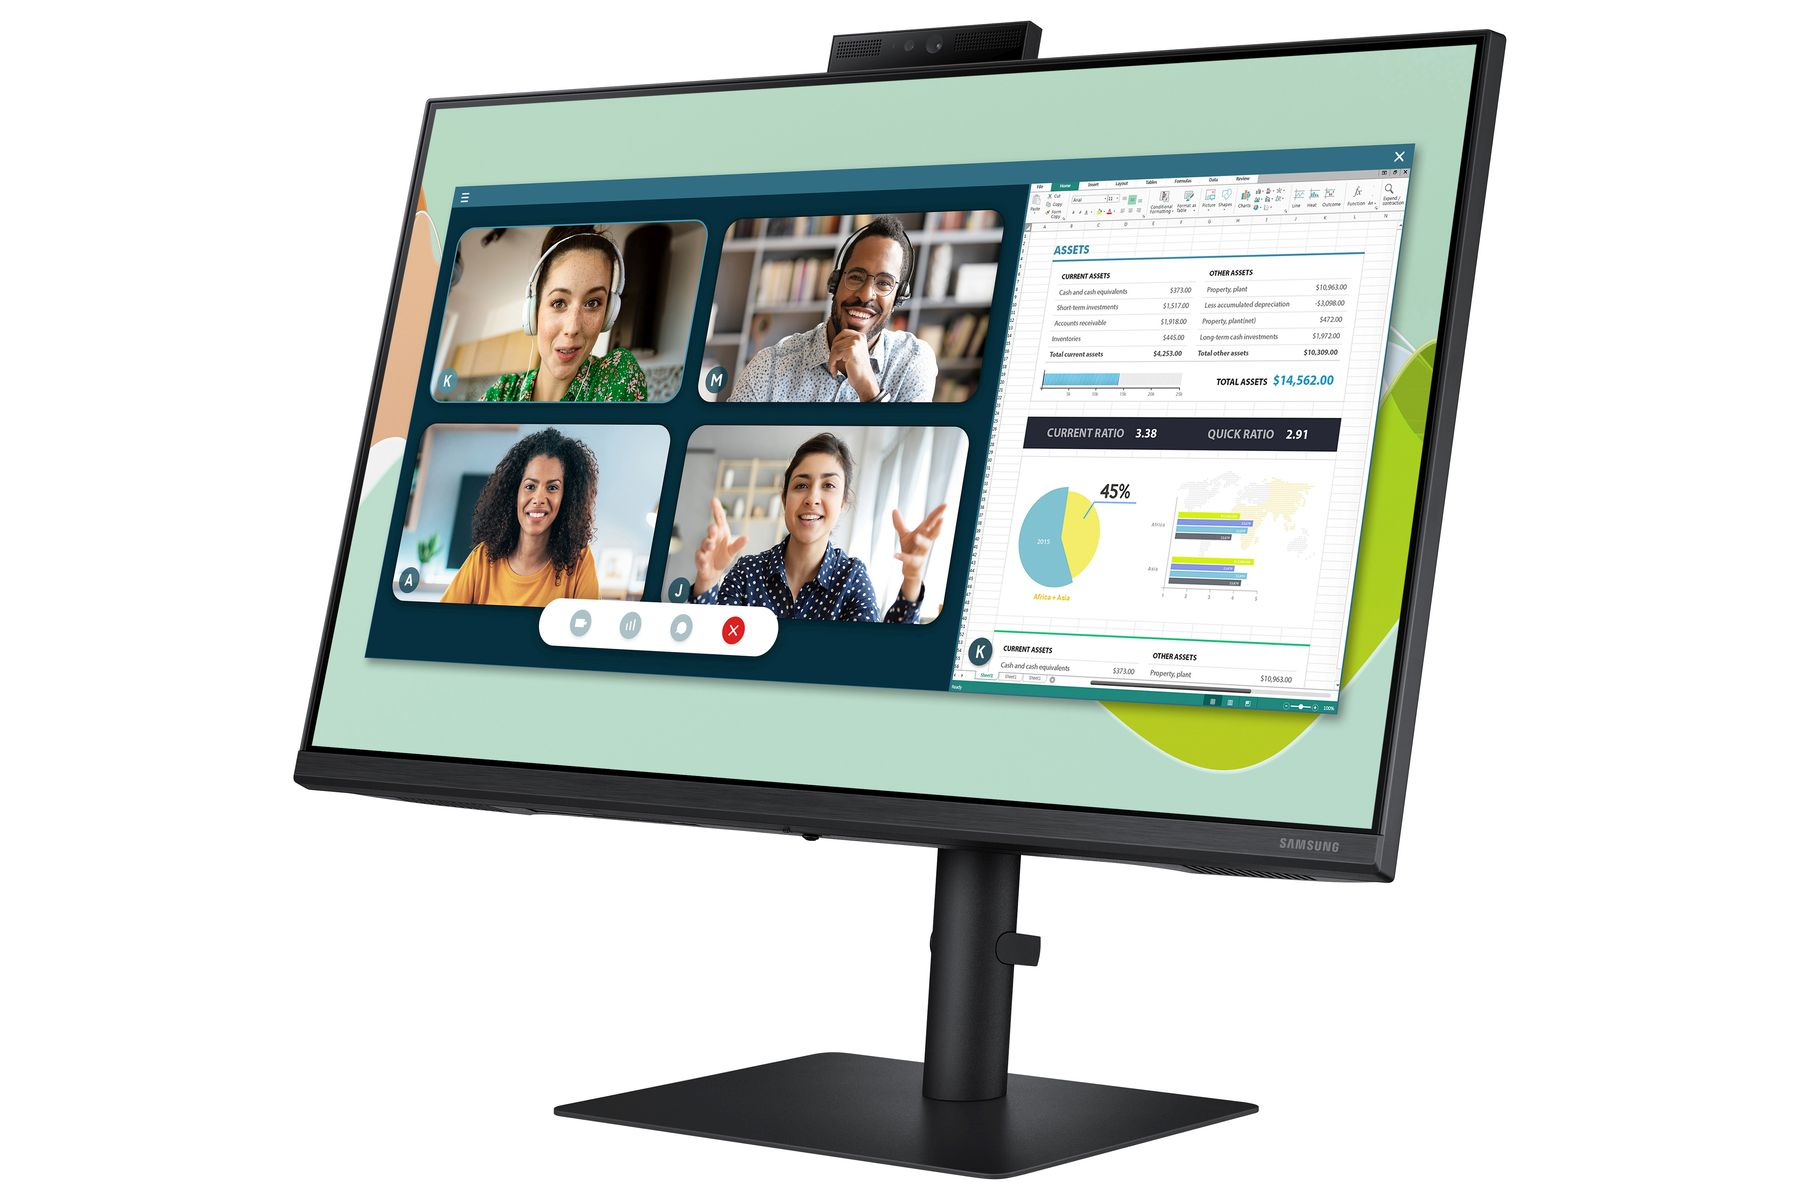 Monitor Samsung S4 - Nowosciproduktowe.pl